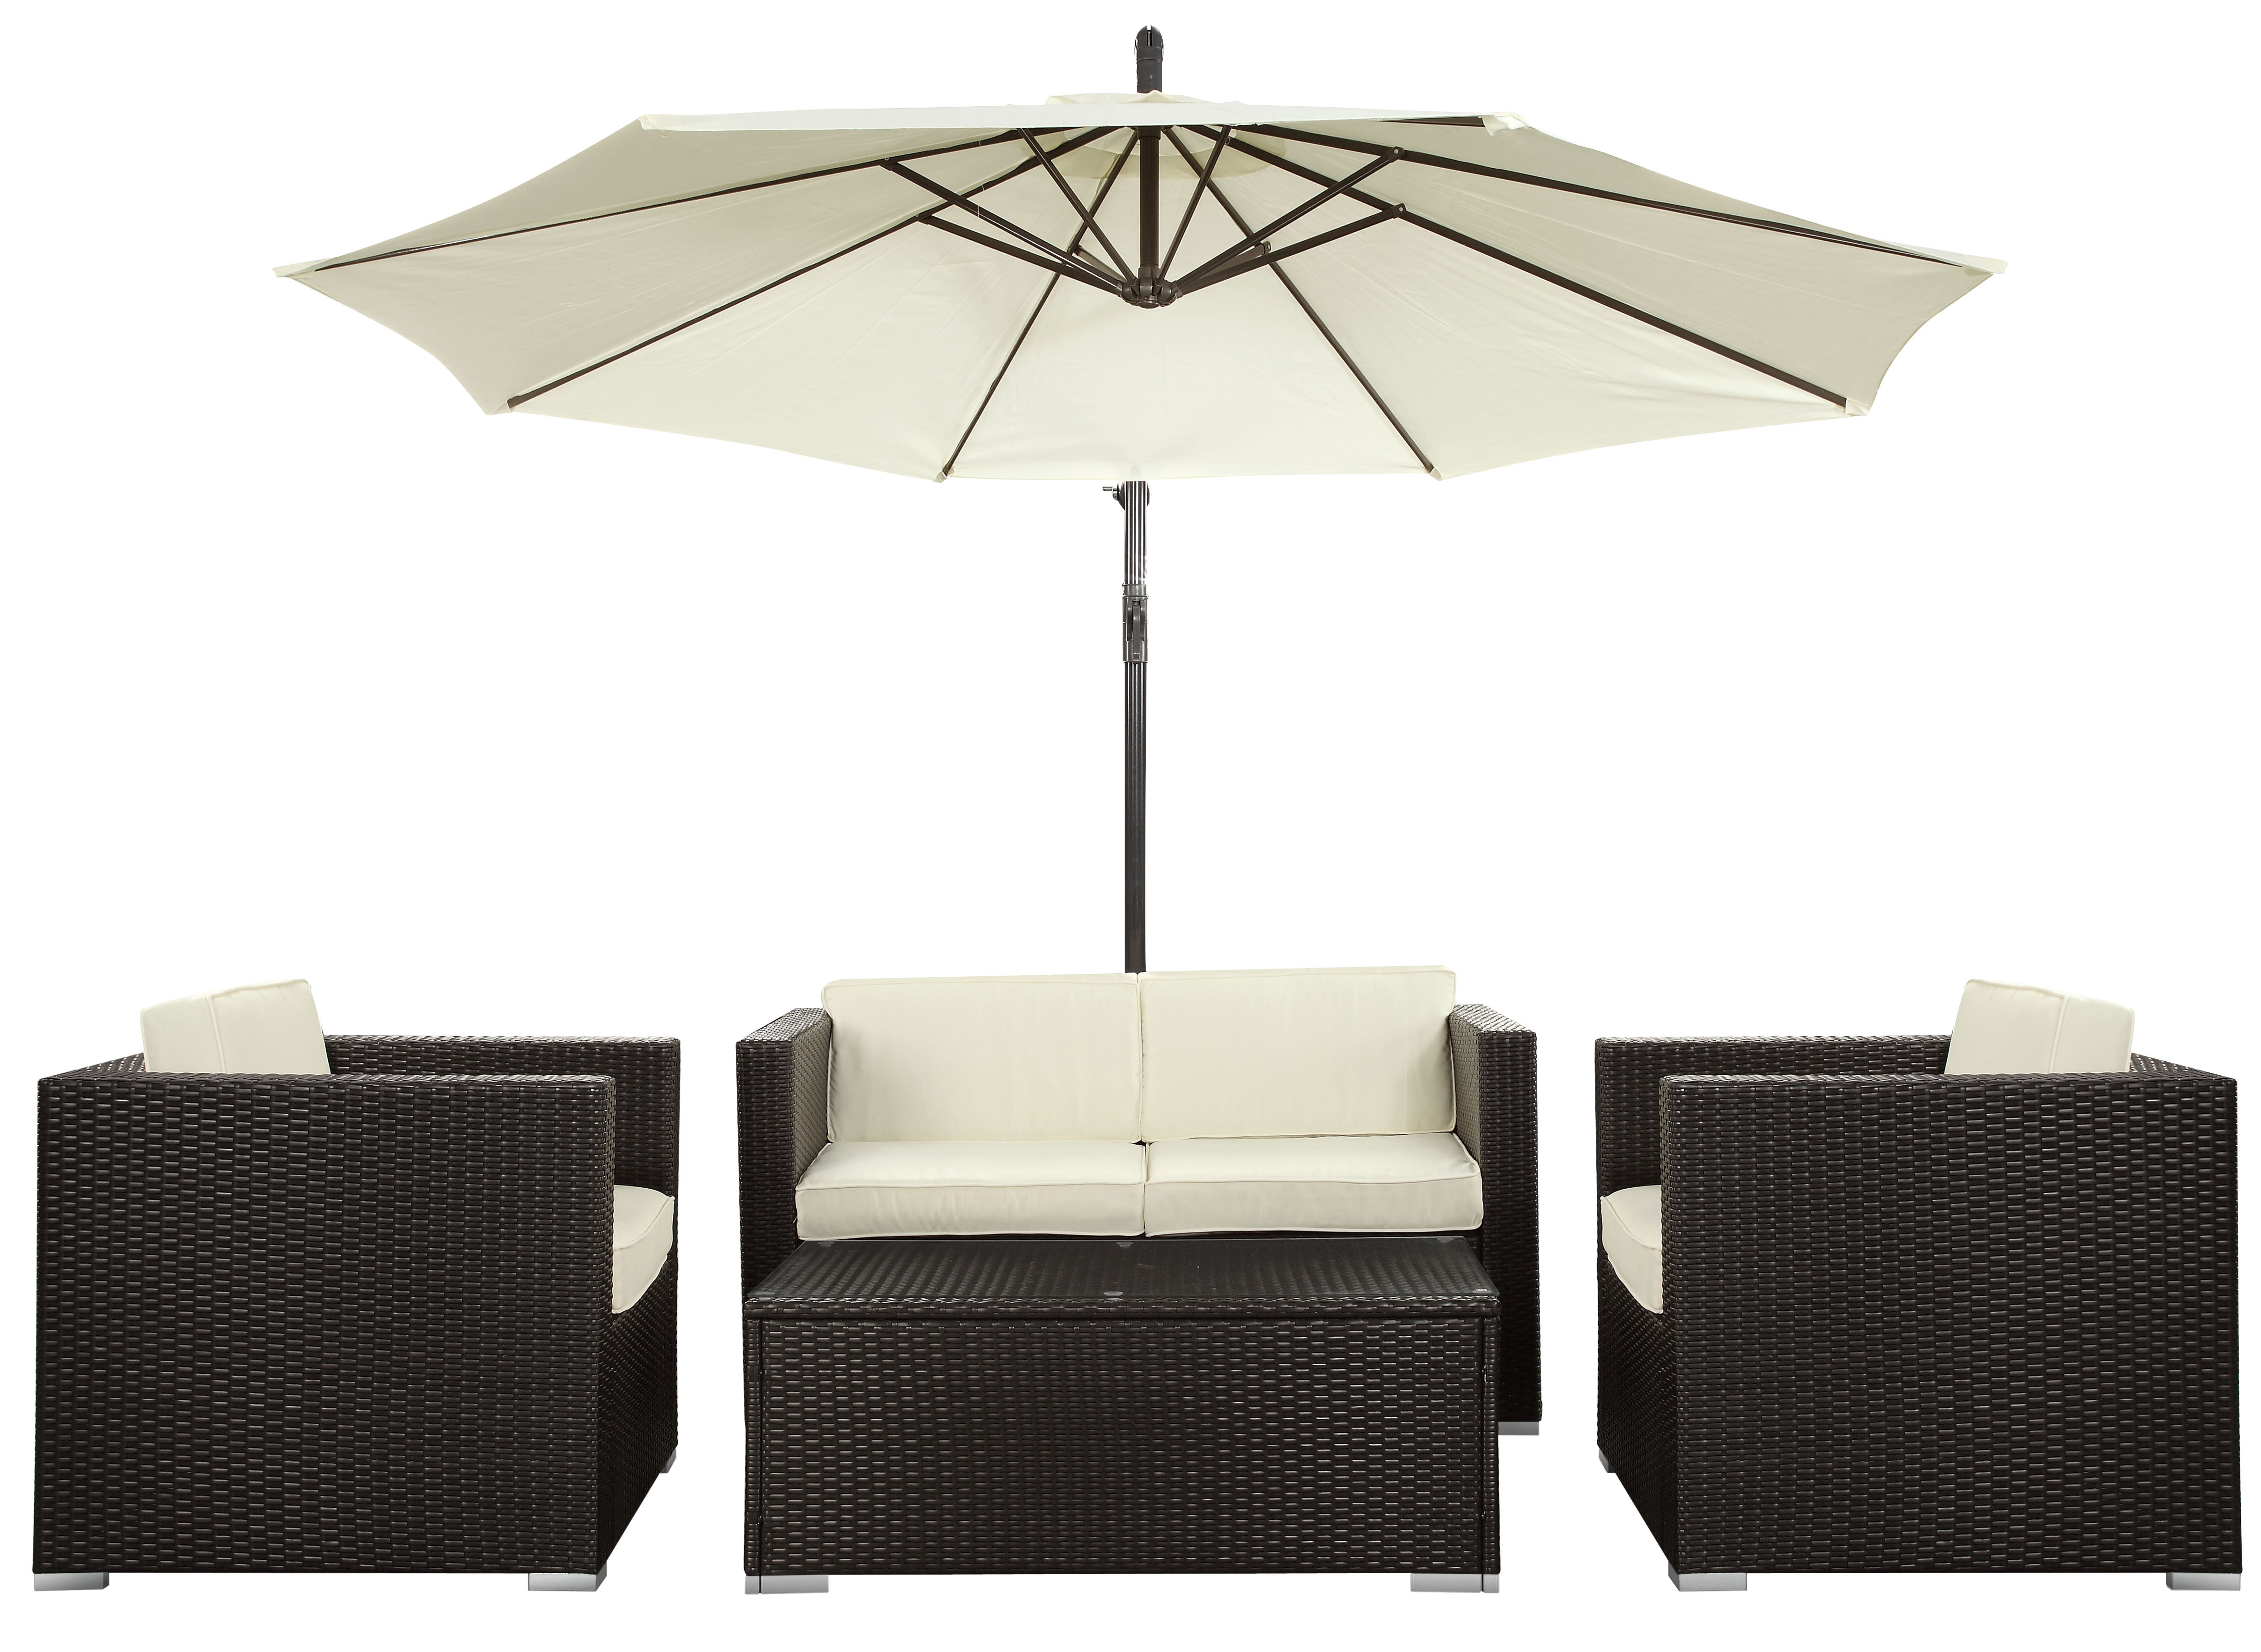 Baltic is comprised of UV resistant rattan, a powder-coated aluminum ...